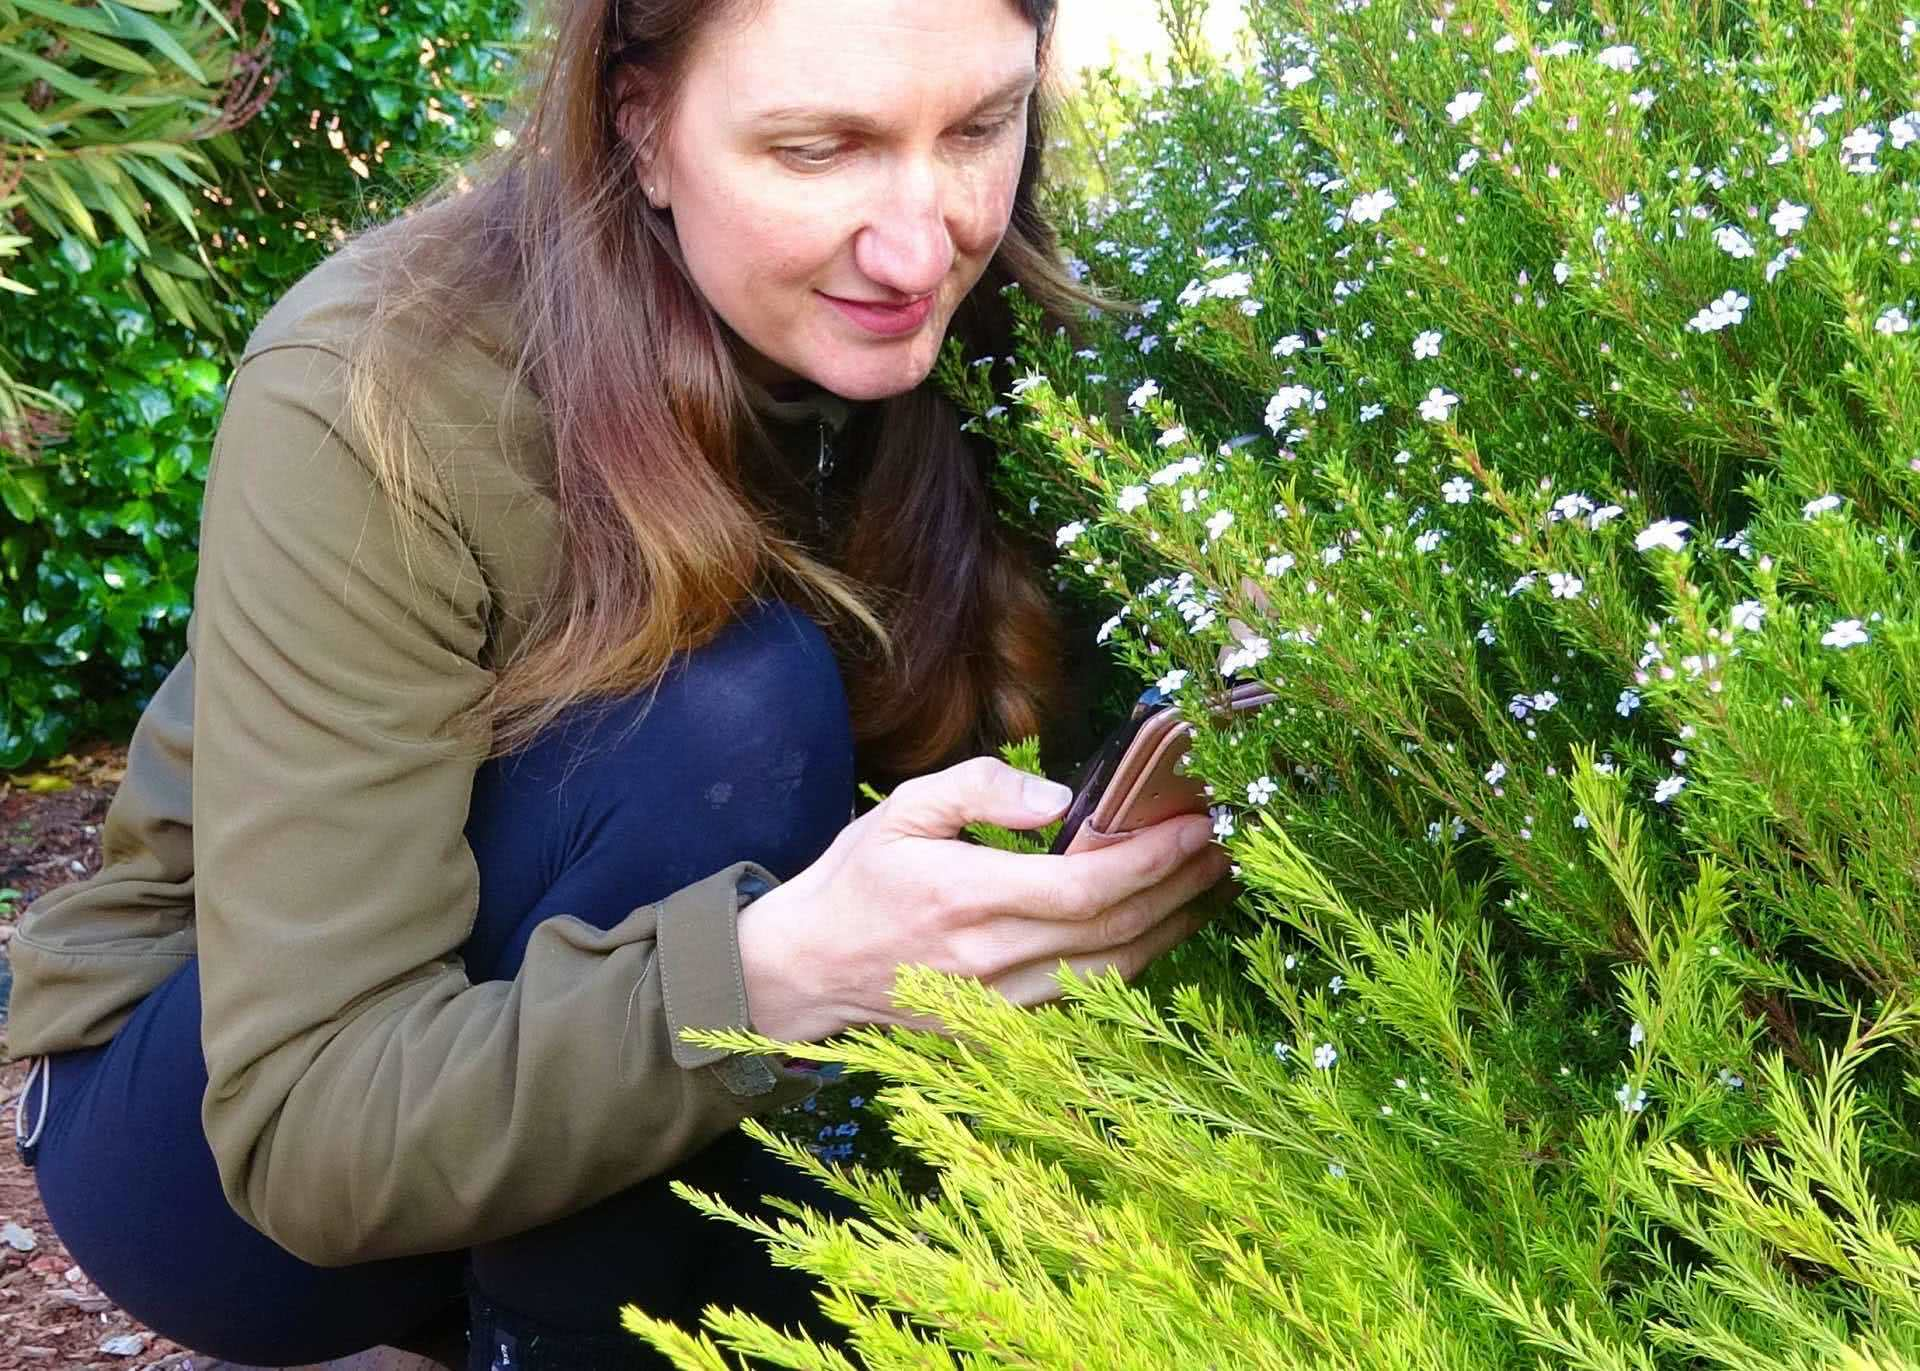 Expedition Anywhere: Explore The World With Citizen Science, Lynette Plenderleith, flowers, backyard, woman, phone